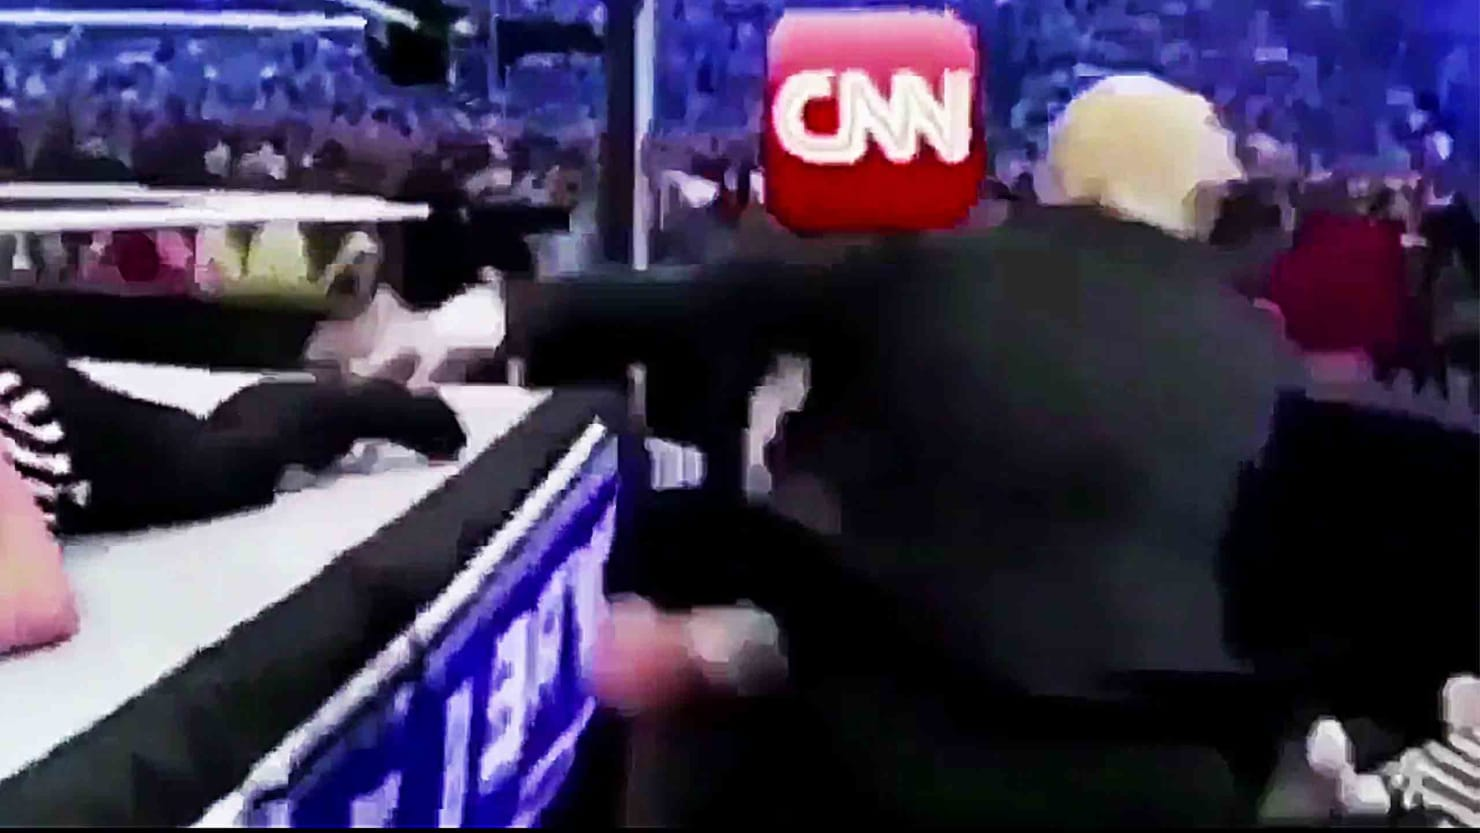 Cnn World News Twitter: Trump Tweets Video Of Him Punching CNN—White House